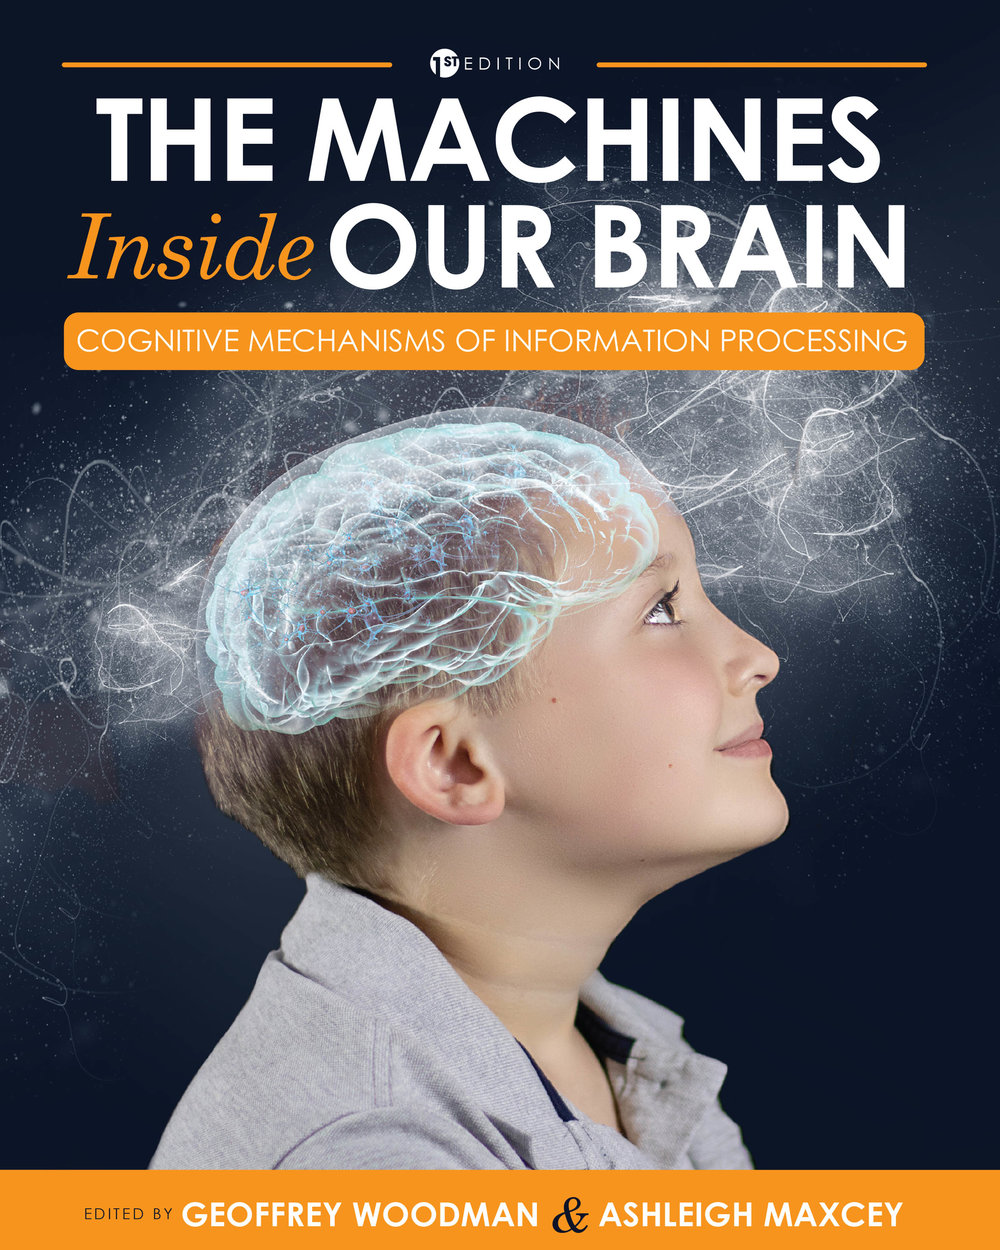 The Machines Inside Our Brain: Cognitive Mechanisms of Information Processing - Eds. Geoffrey Woodman & Ashleigh Maxcey. Available January 2019.